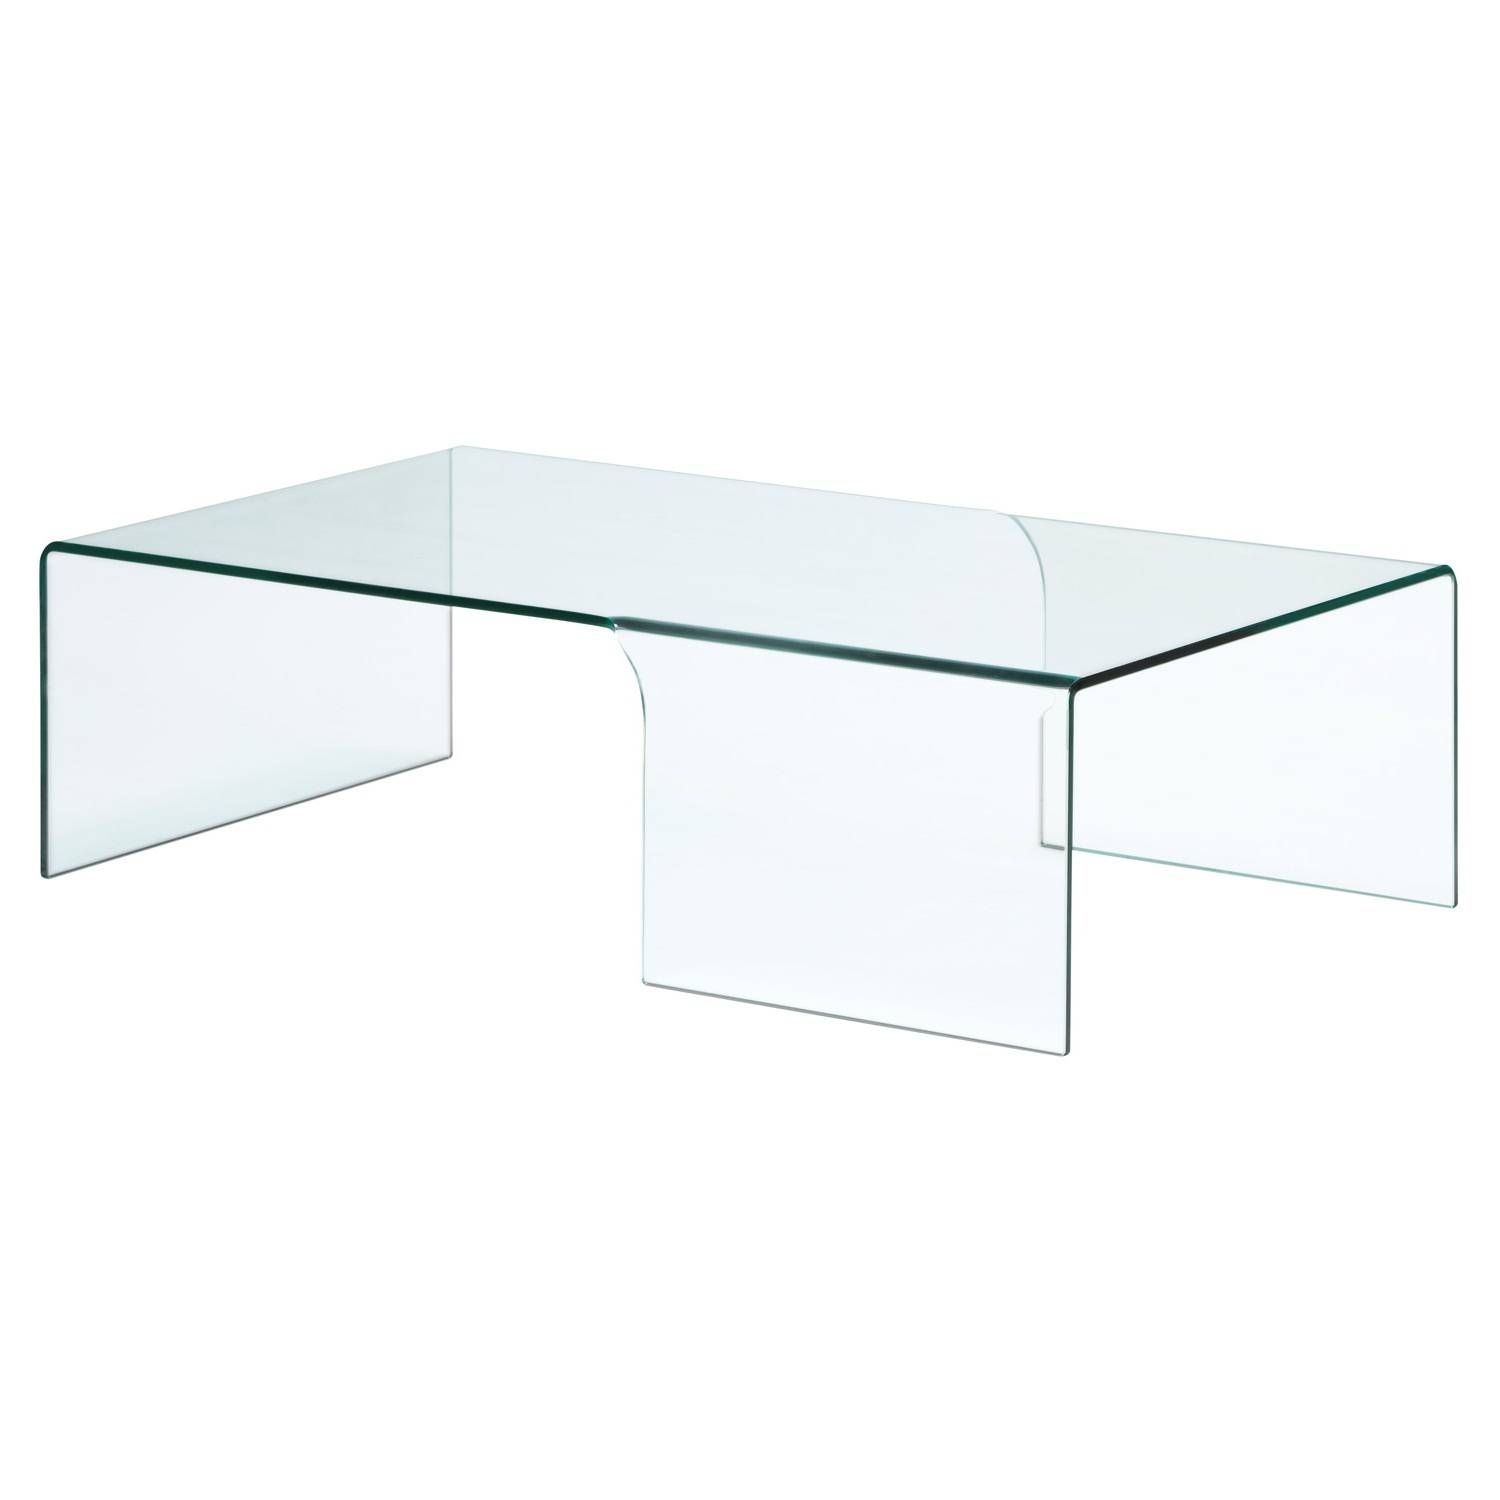 Modern Coffee Table Sets Gallery Design – Modern Coffee Table regarding All Glass Coffee Tables (Image 24 of 30)